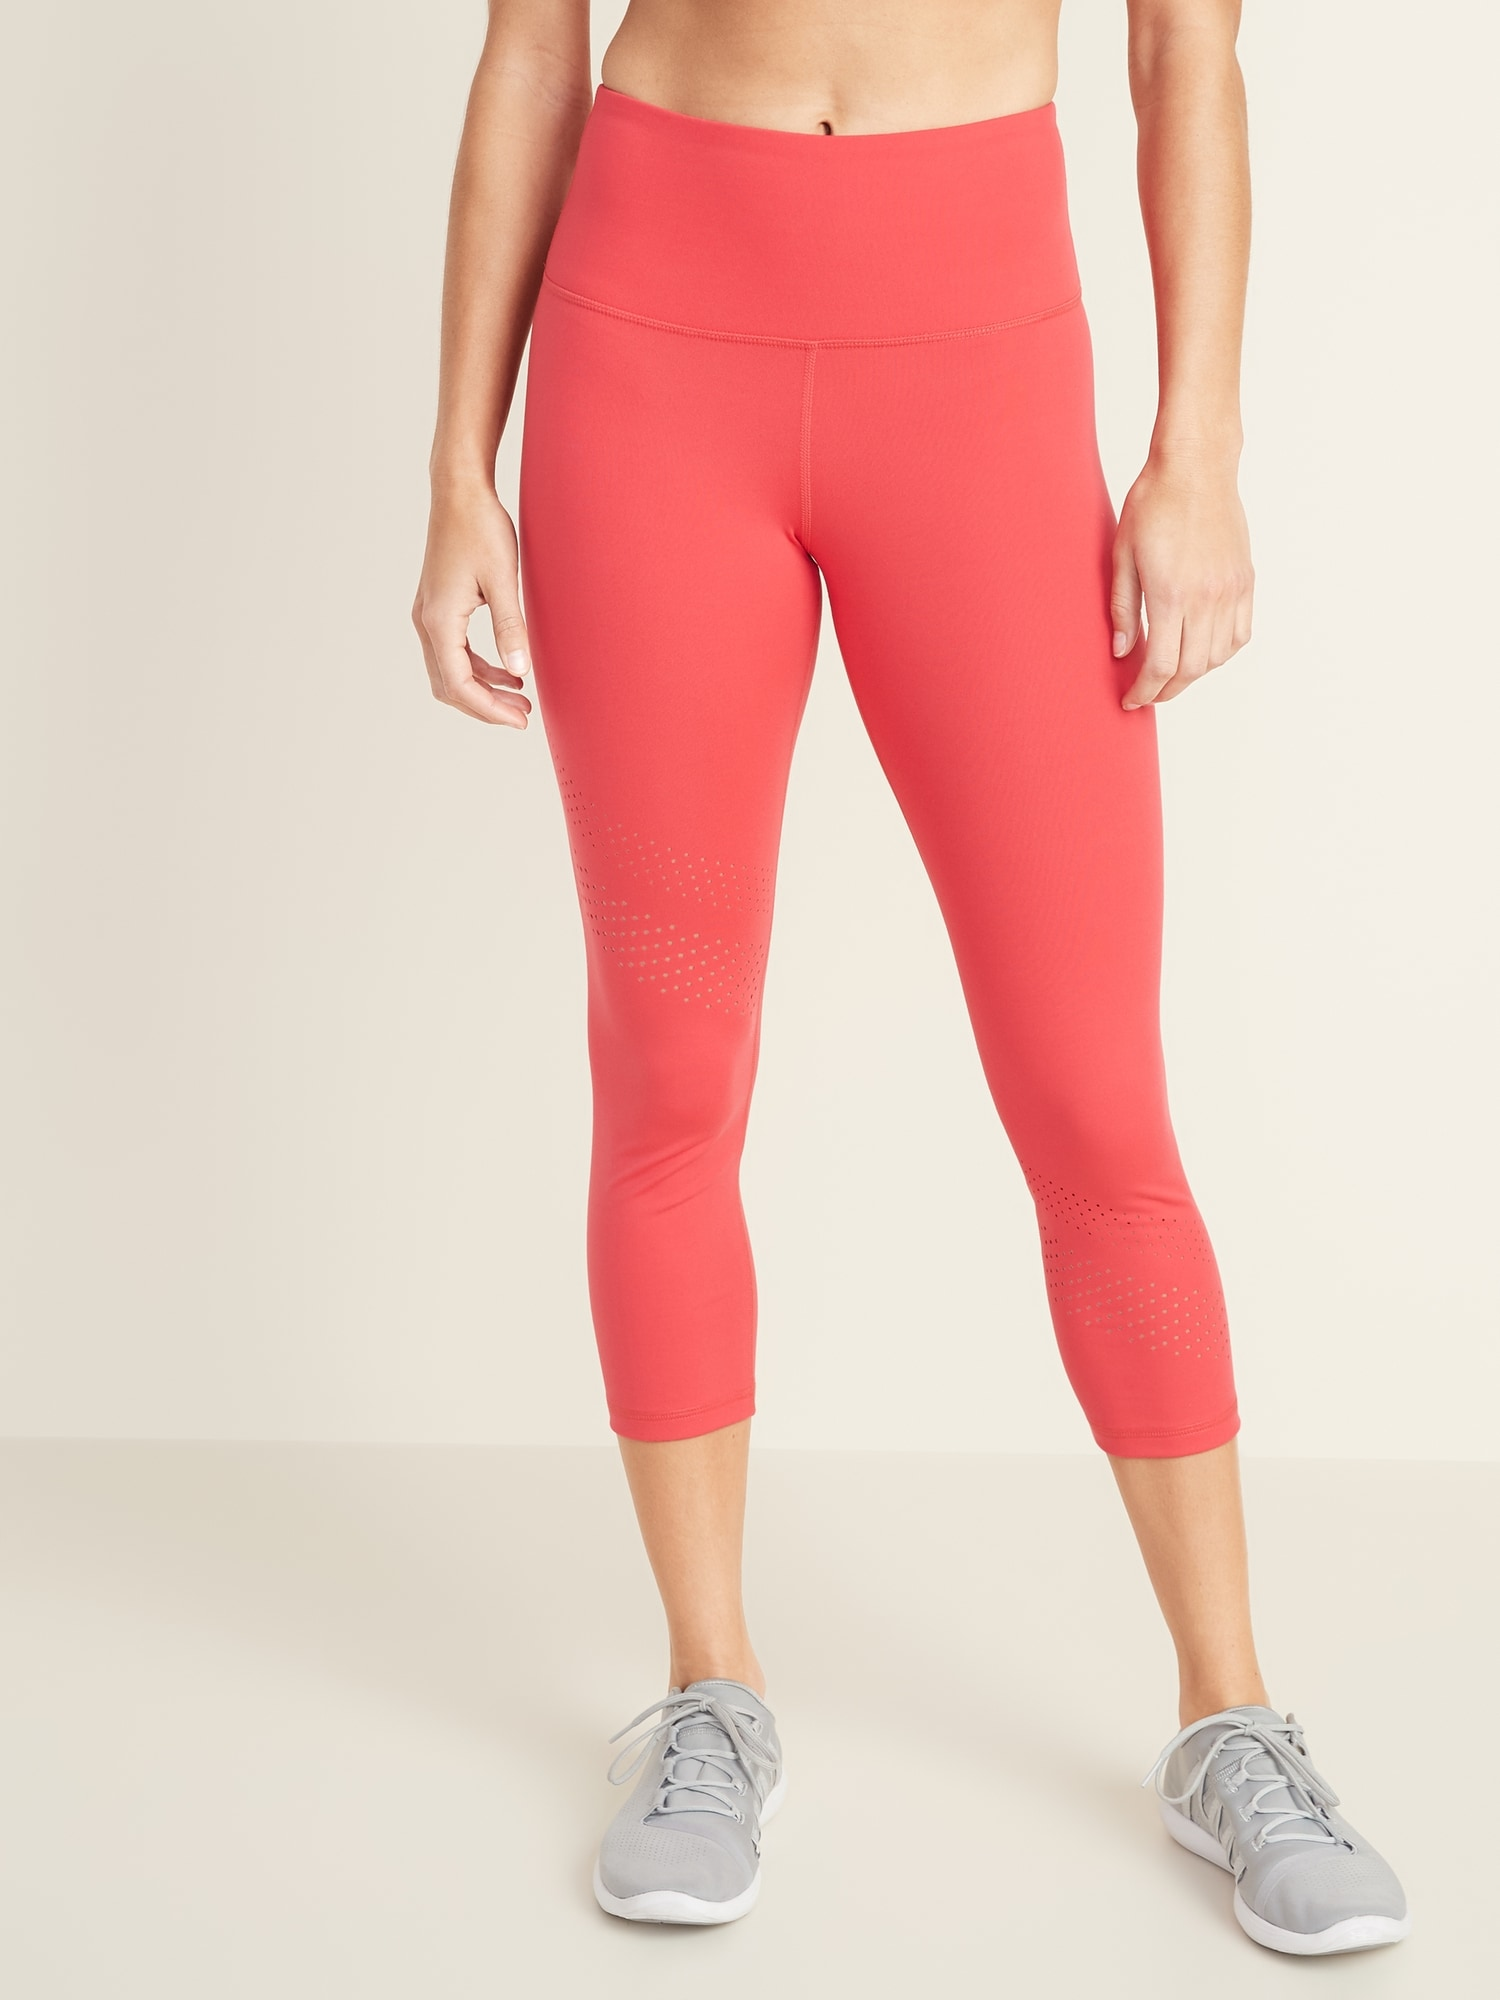 a0a104cca83581 High-Rise Elevate Laser-Cut Compression Crops for Women | Old Navy